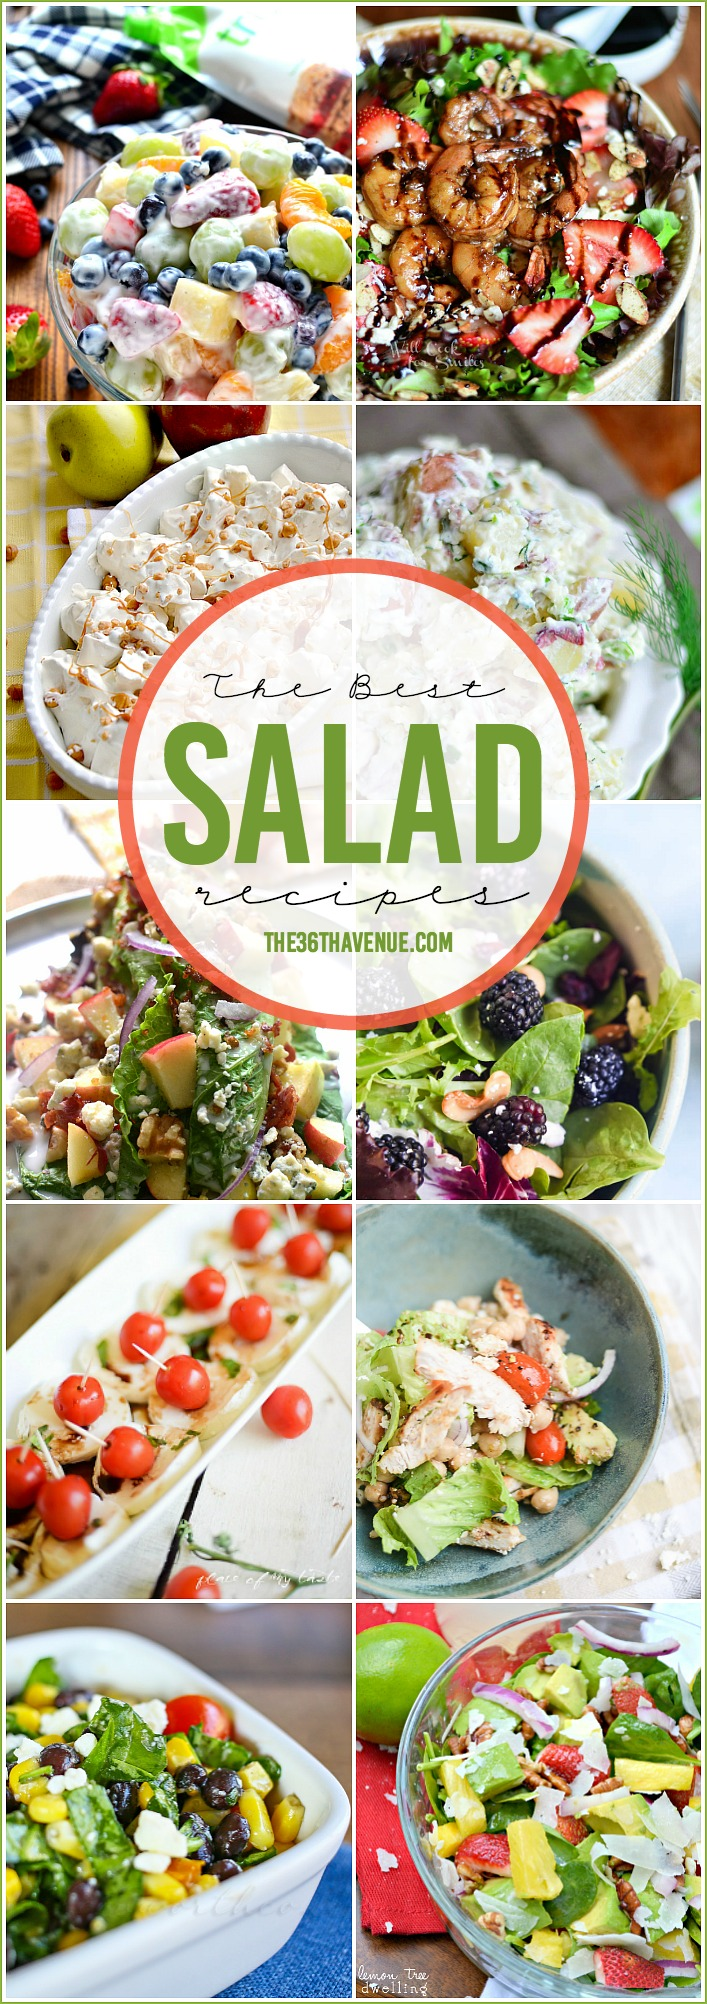 Salad Recipes - Delicious and easy Salad Recipes